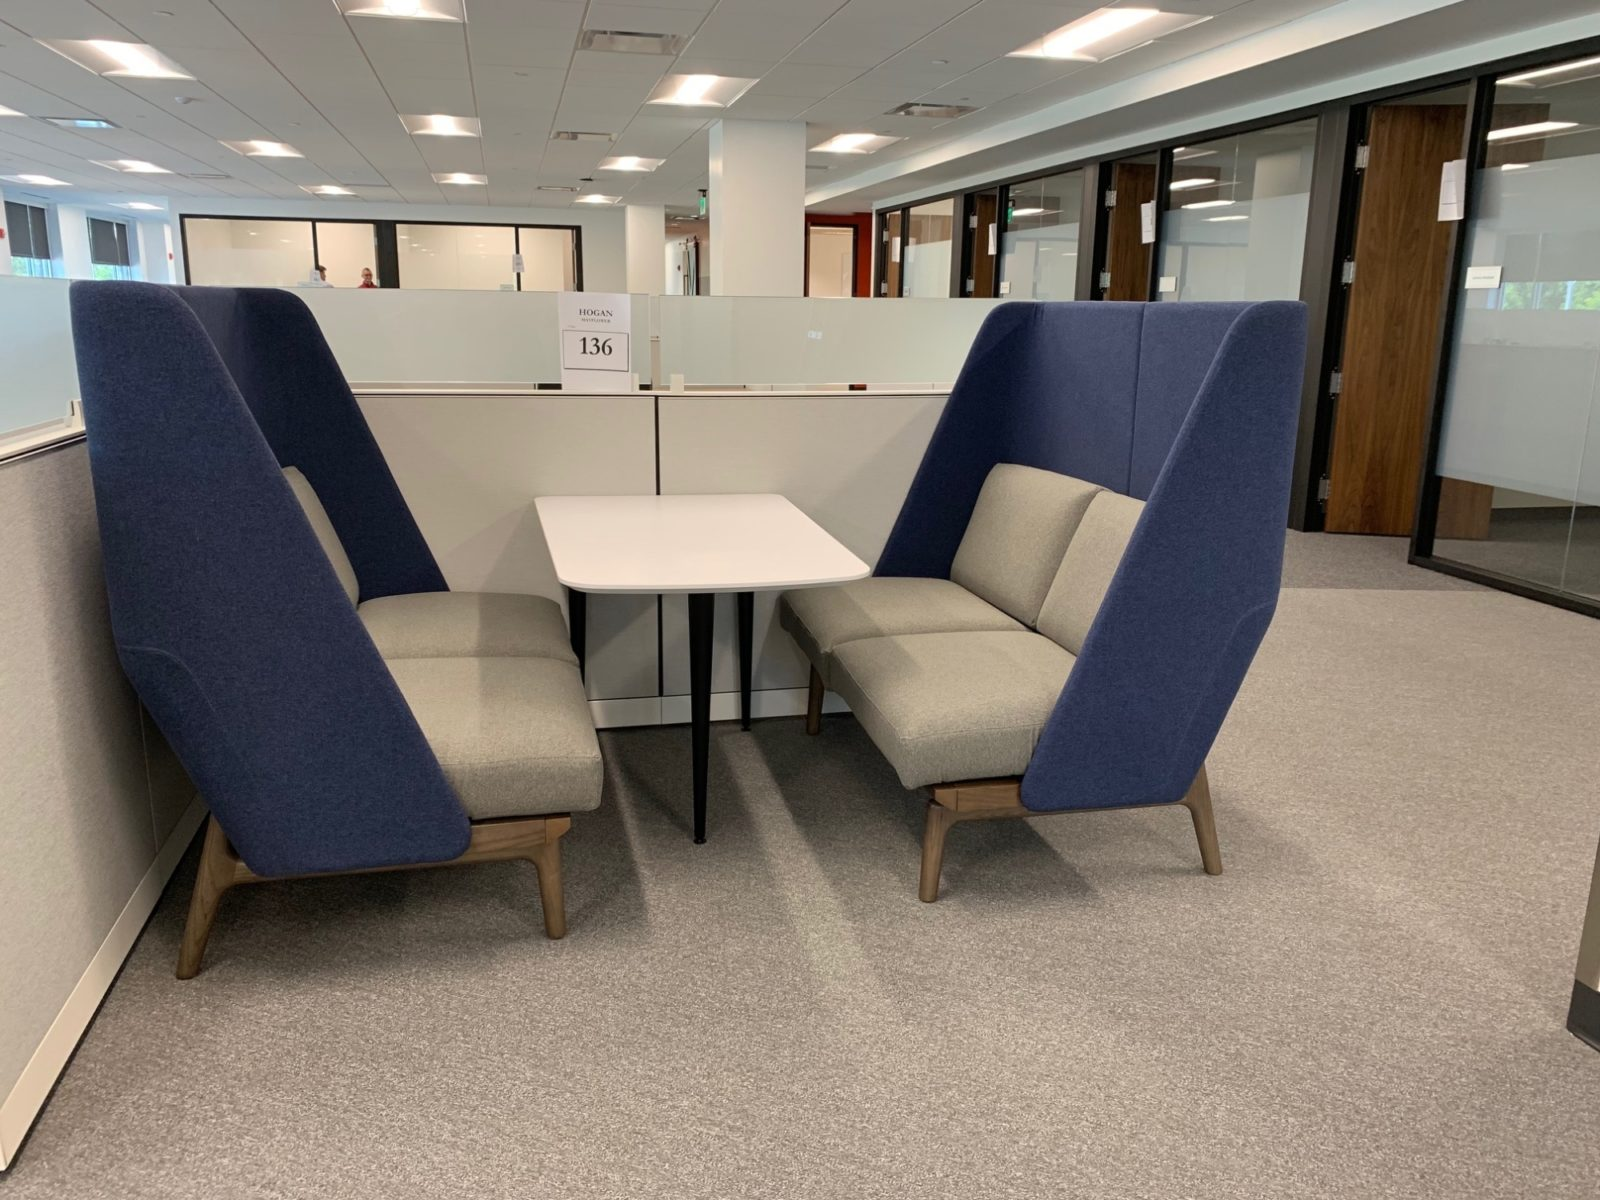 Booth and table at the Goodman Campbell Brain and Spine center